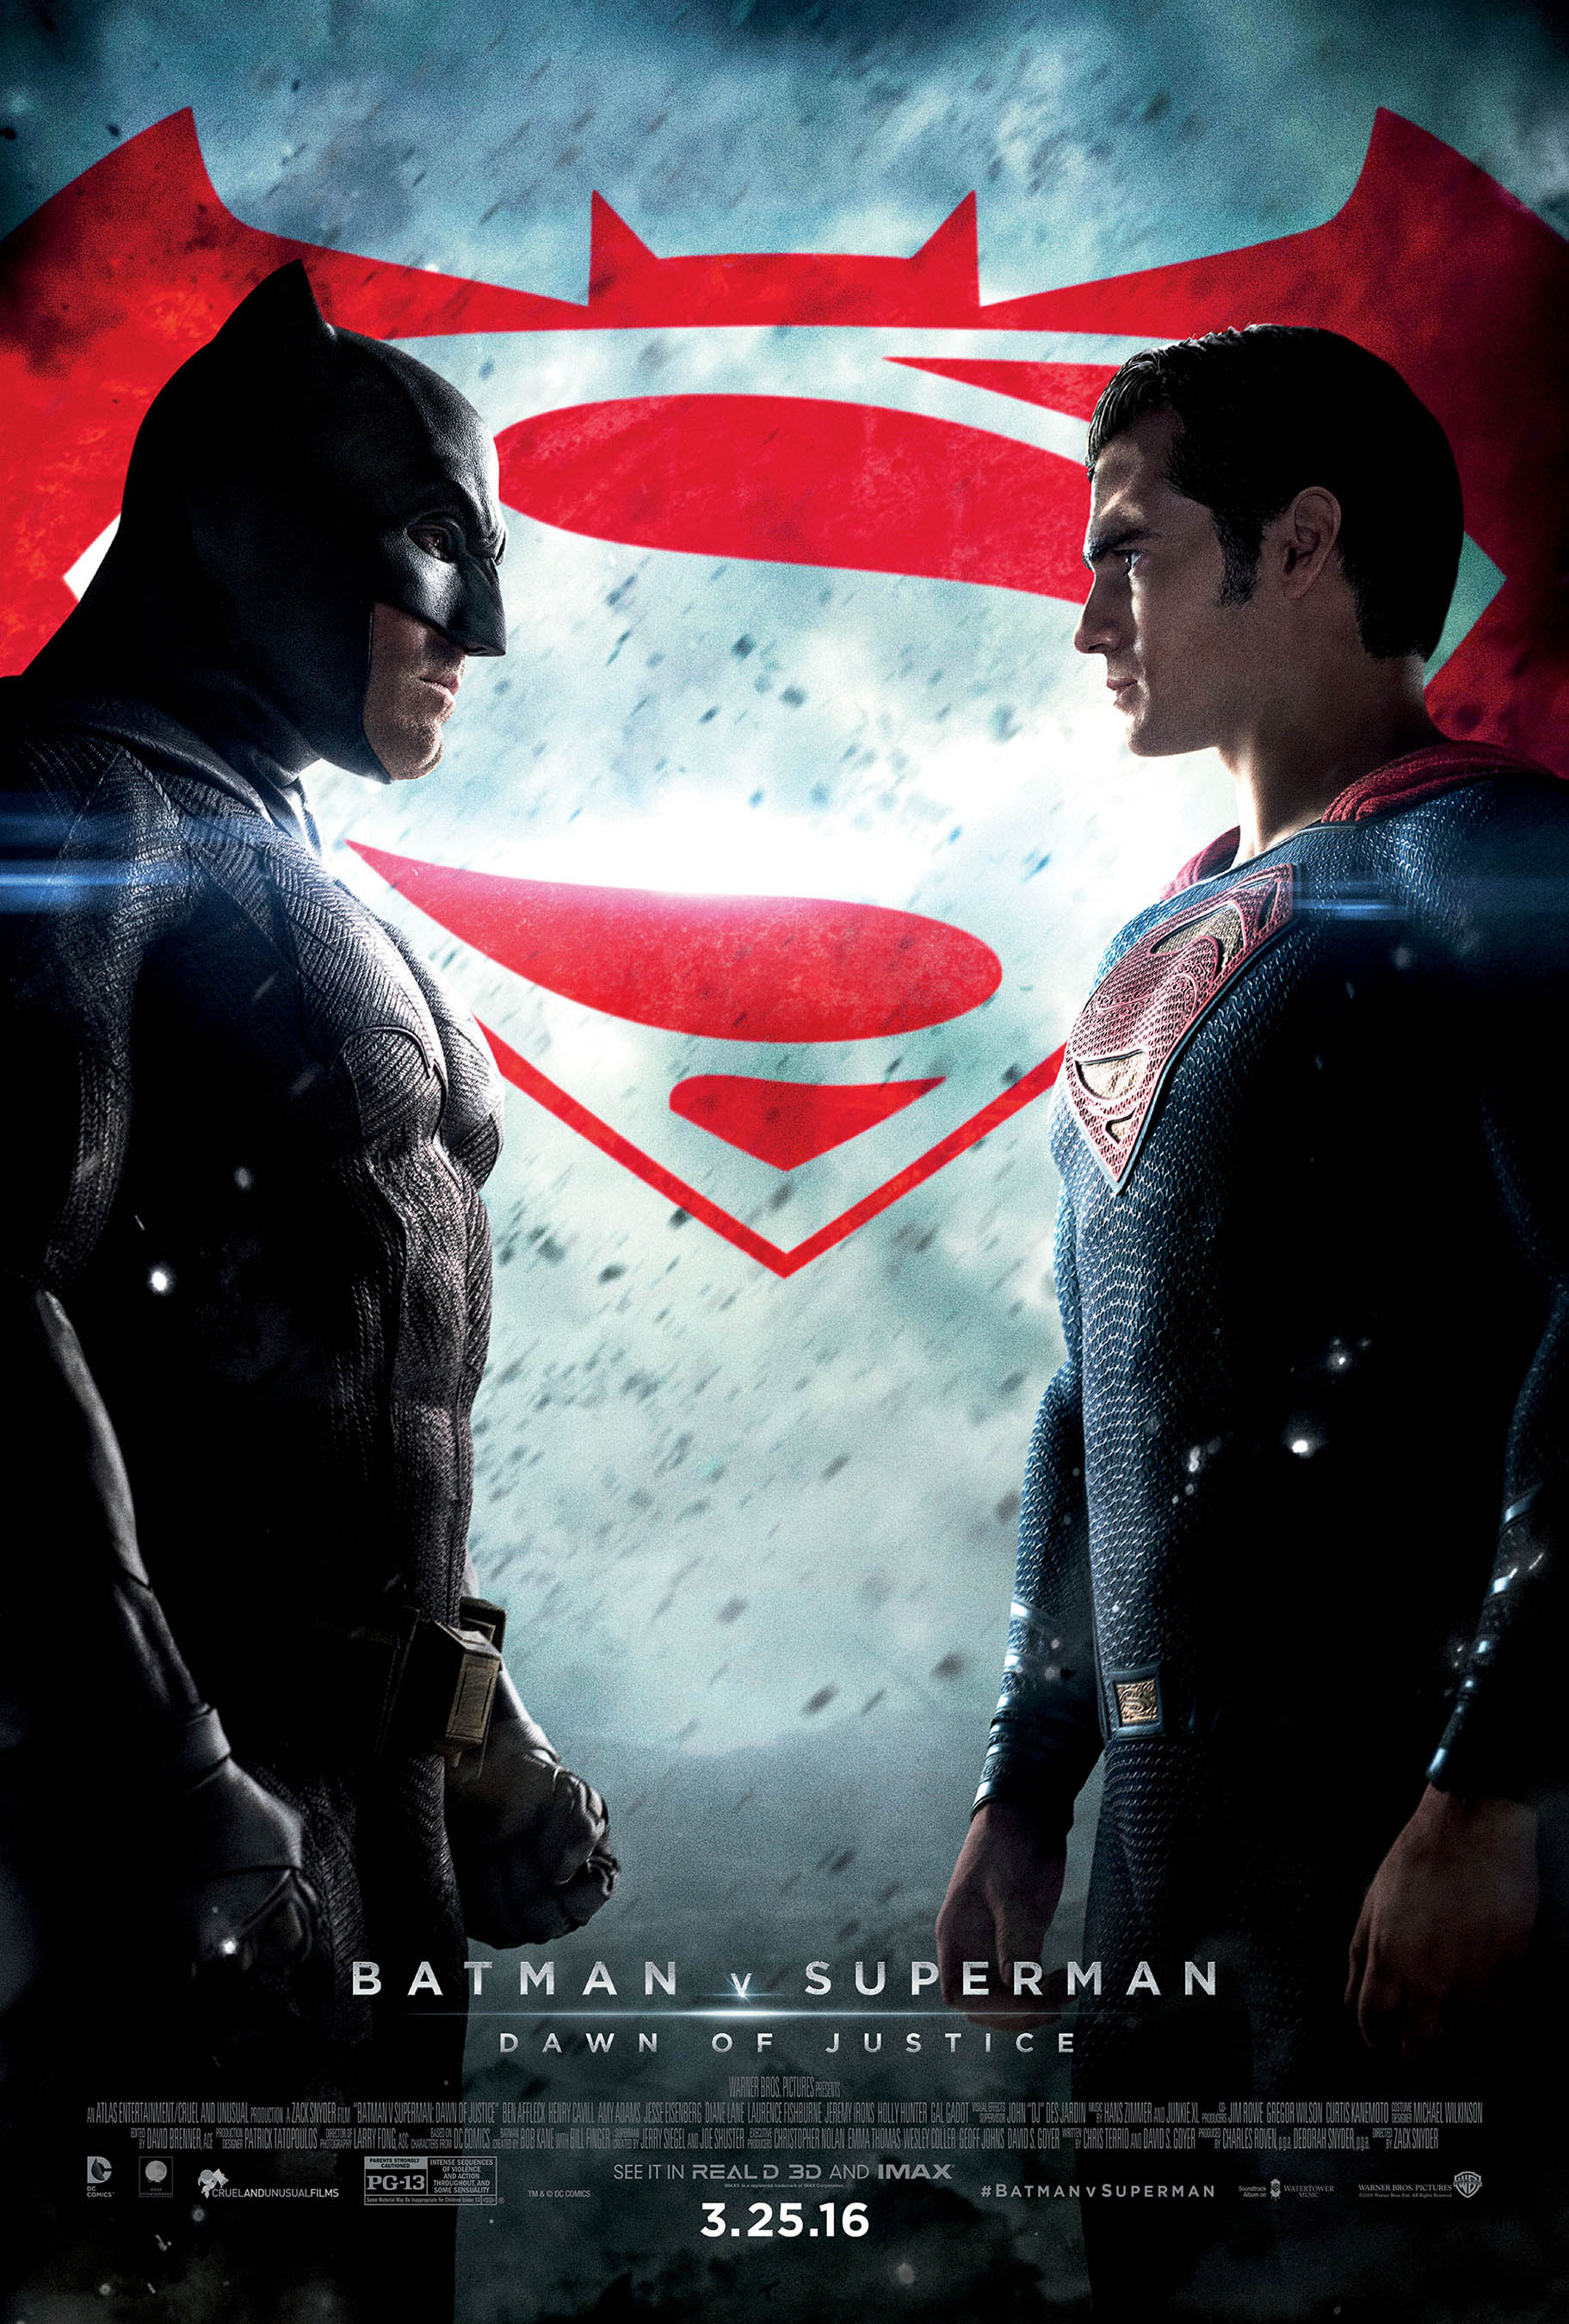 4670f32445 Batman v Superman: Dawn of Justice (2016) - IMDb